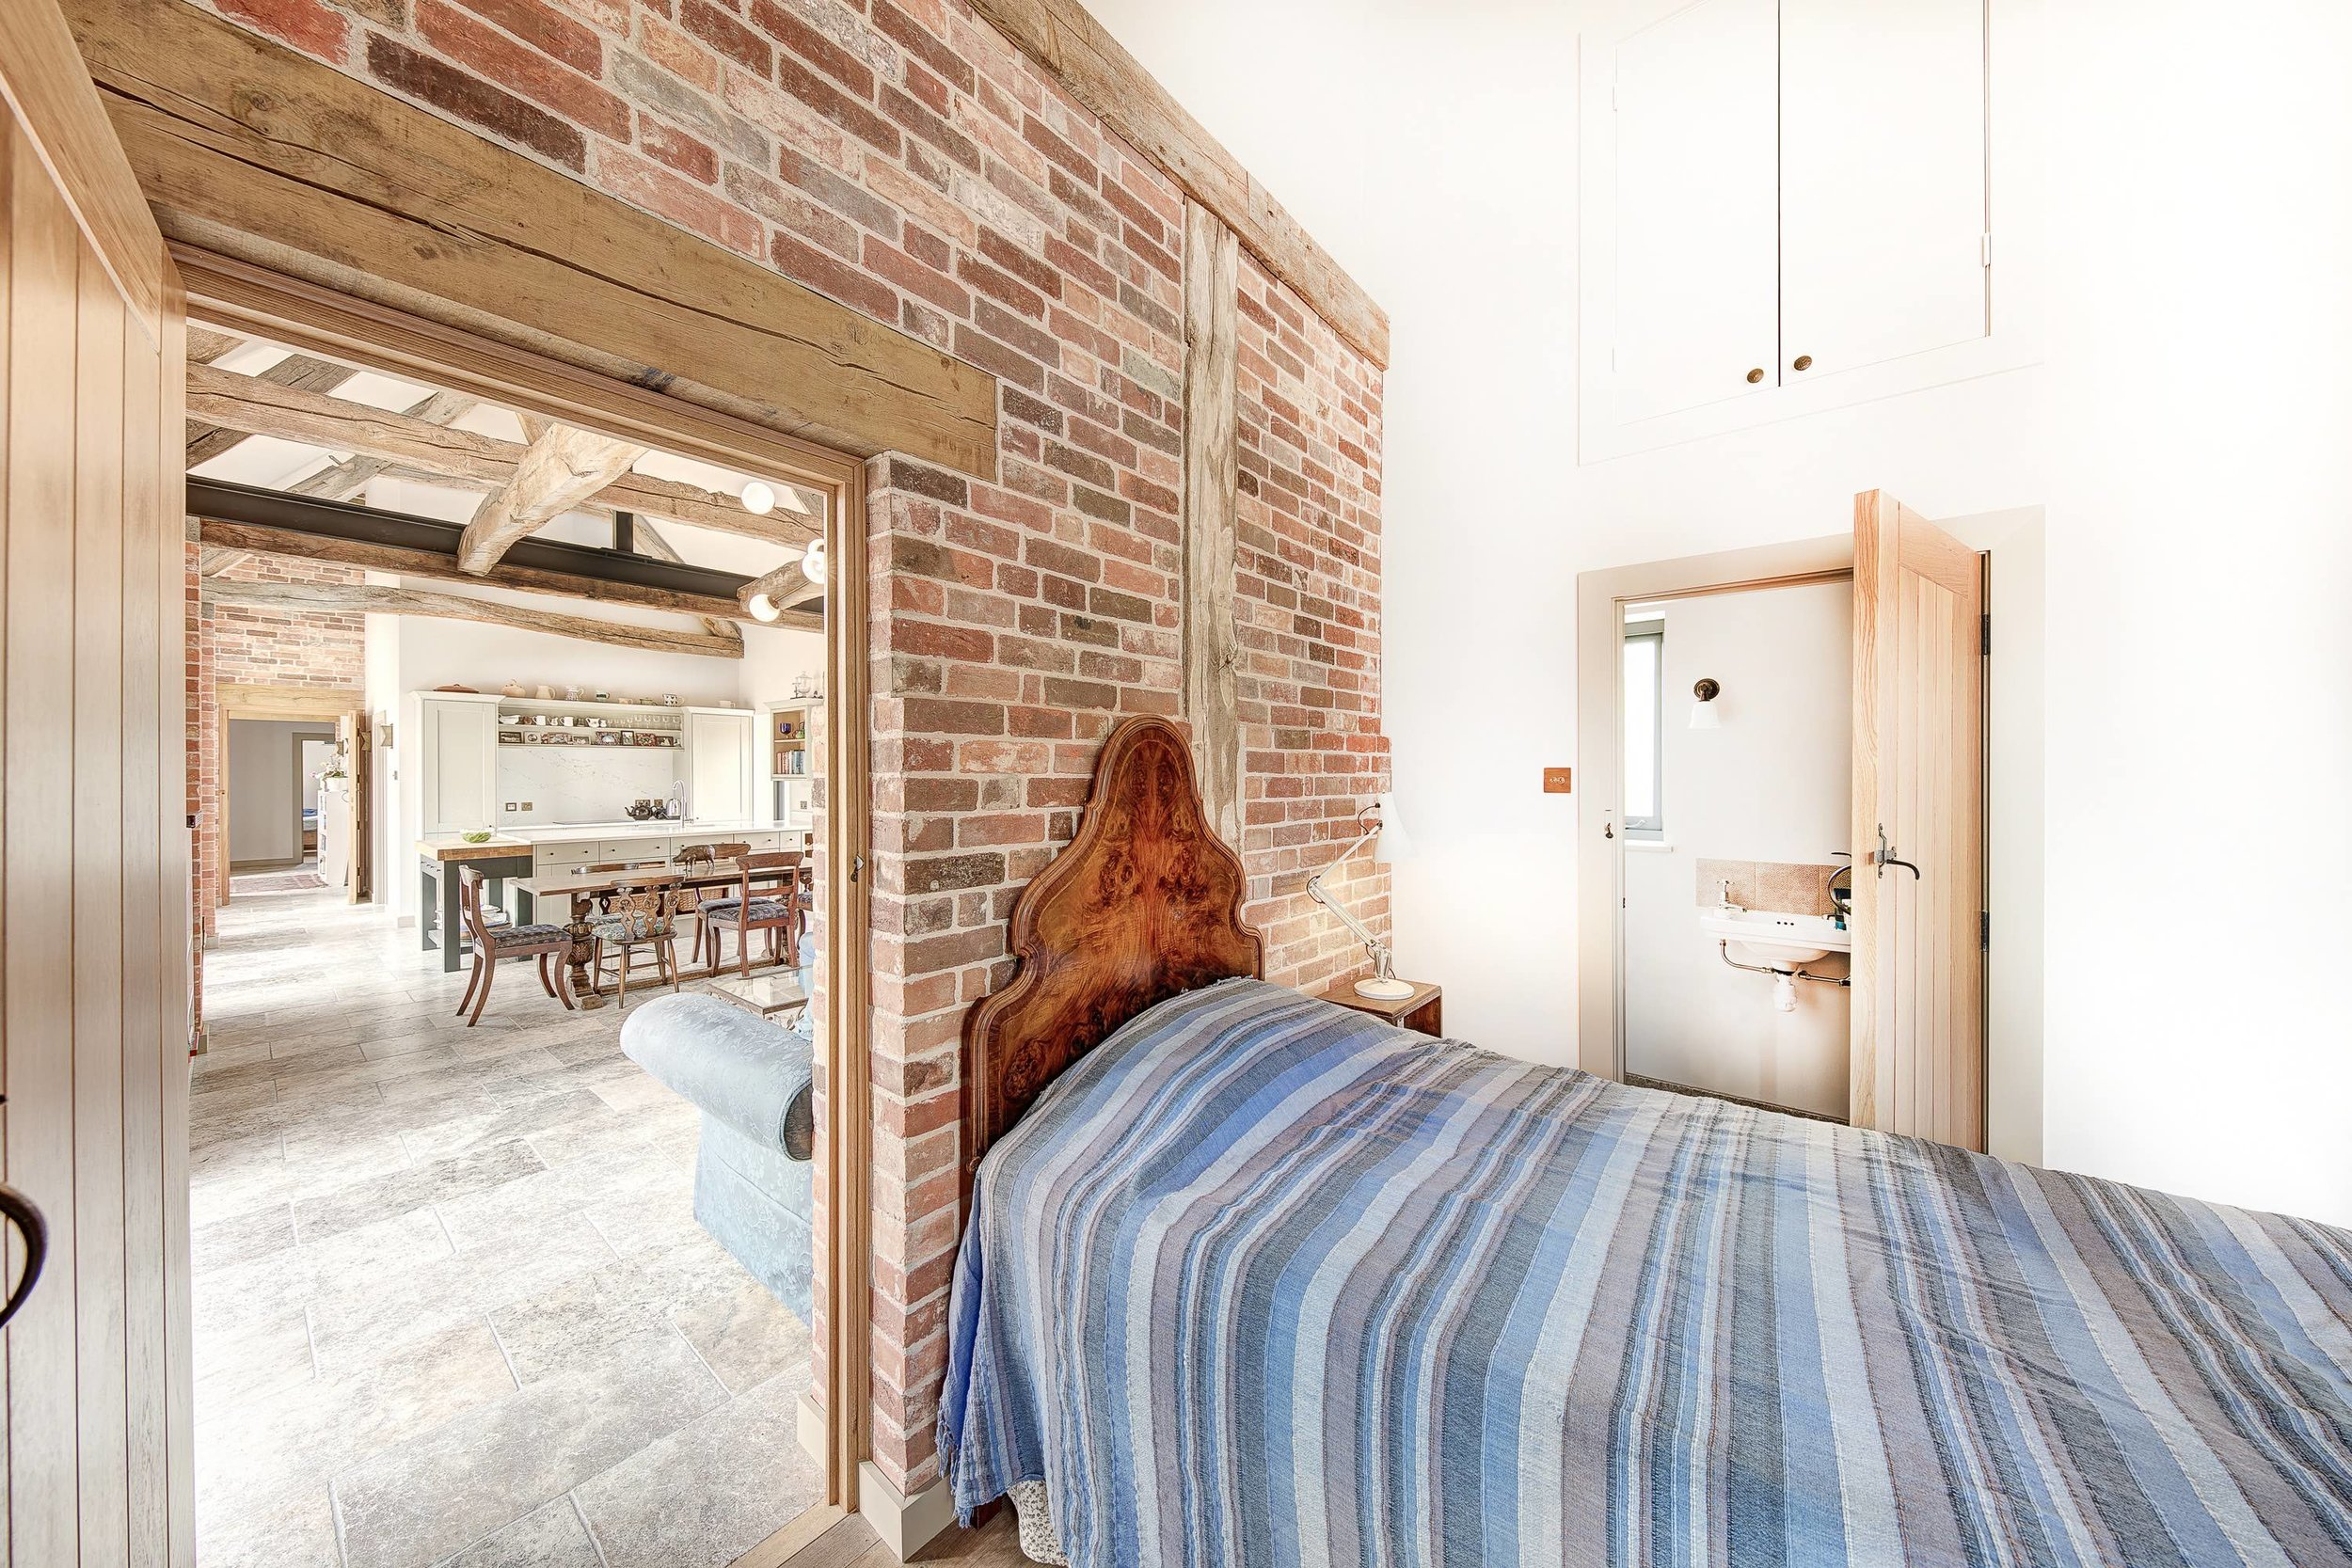 Projects_Snows barn bedroom.lowres.jpg